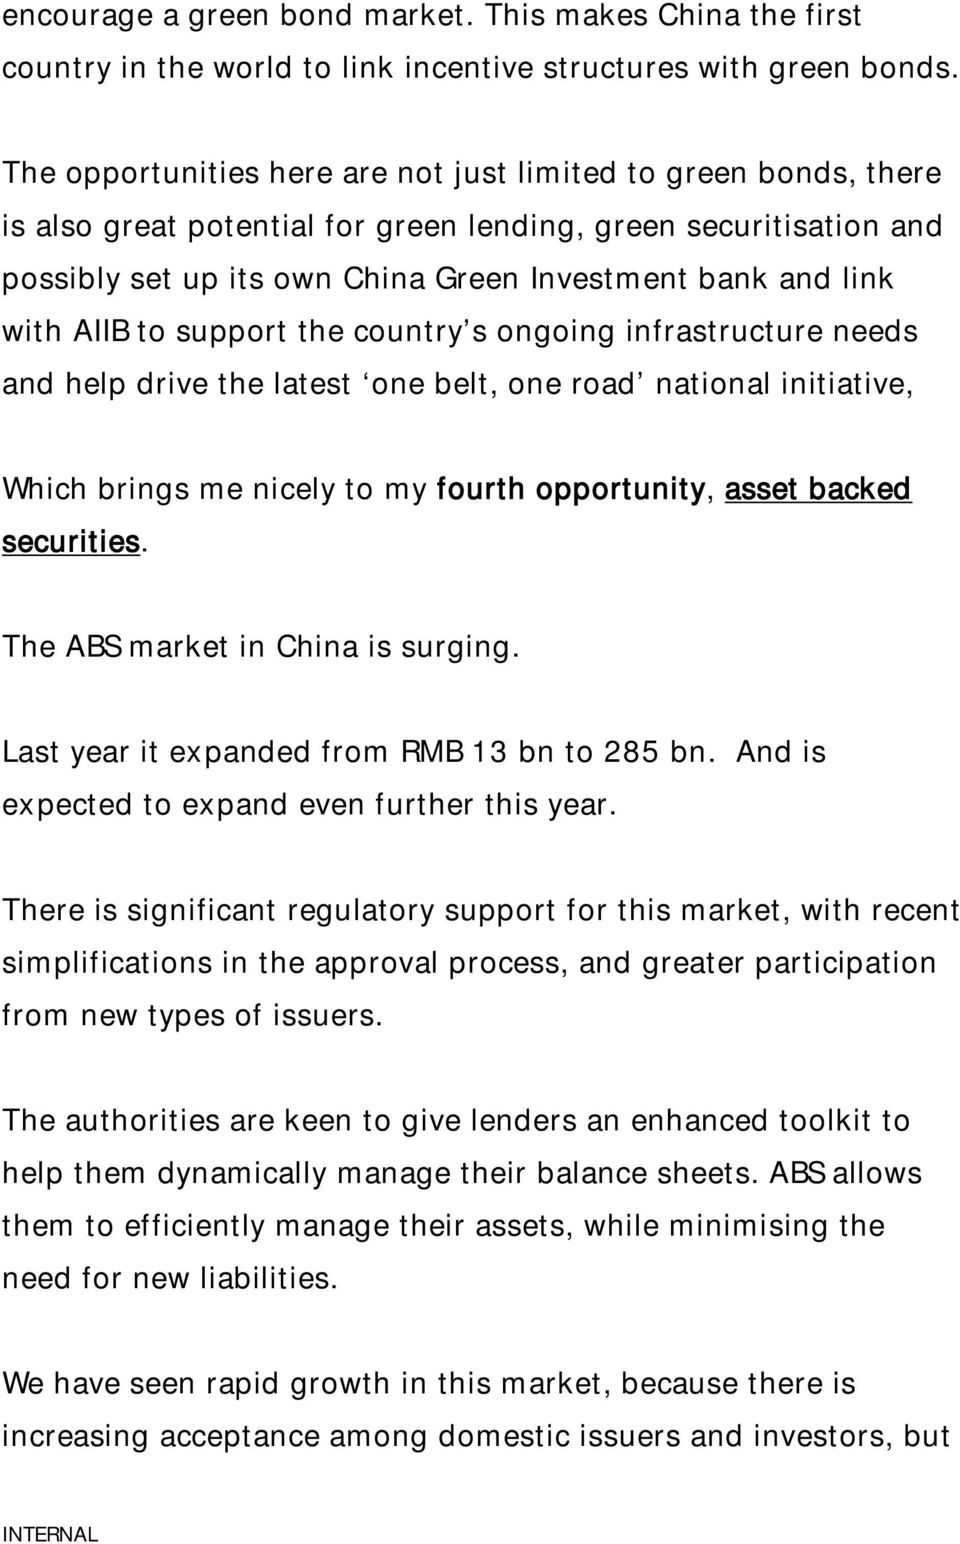 AIIB to support the country s ongoing infrastructure needs and help drive the latest one belt, one road national initiative, Which brings me nicely to my fourth opportunity, asset backed securities.